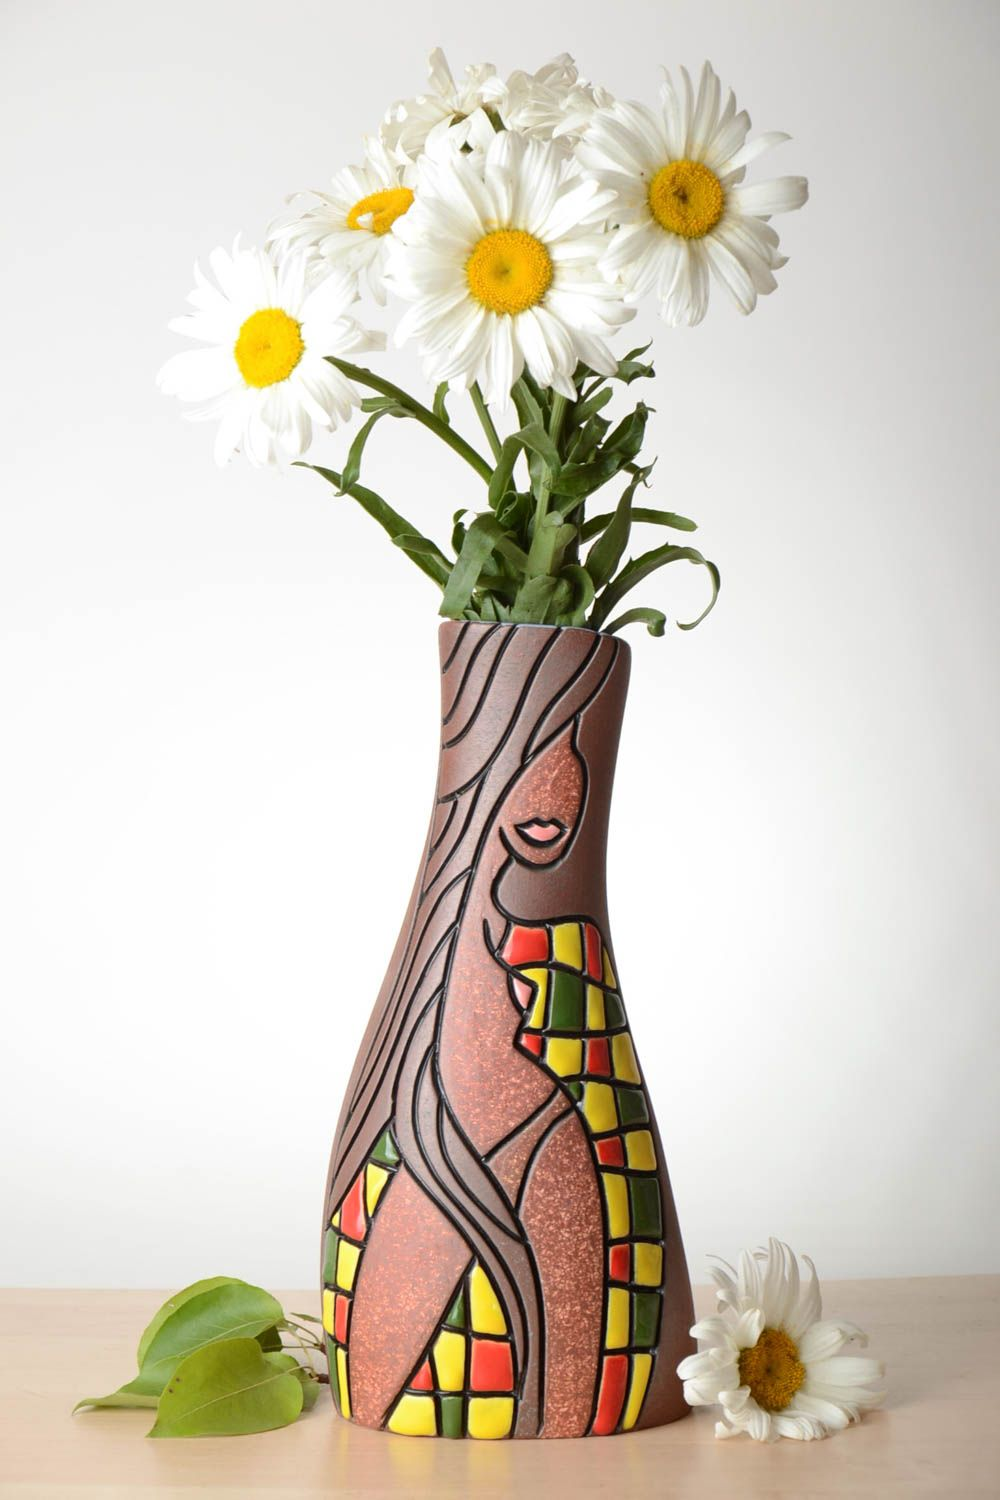 flower vase decoration - Left.handsintl.co on flower vase painting ideas, flower shop design ideas, flower border design ideas, flower bulb design ideas, flower container design ideas, flower vase decor ideas, flower vase craft ideas, fresh flower design ideas, flower vase kitchen, flower bed design ideas, flower bottle design ideas, flower thank you ideas, vase arrangements ideas, flower vase art ideas, silk flower design ideas, flower vases for weddings, flower arrangement ideas, flower anniversary ideas, decorative pvc pipe vase ideas, simple flower vase ideas,